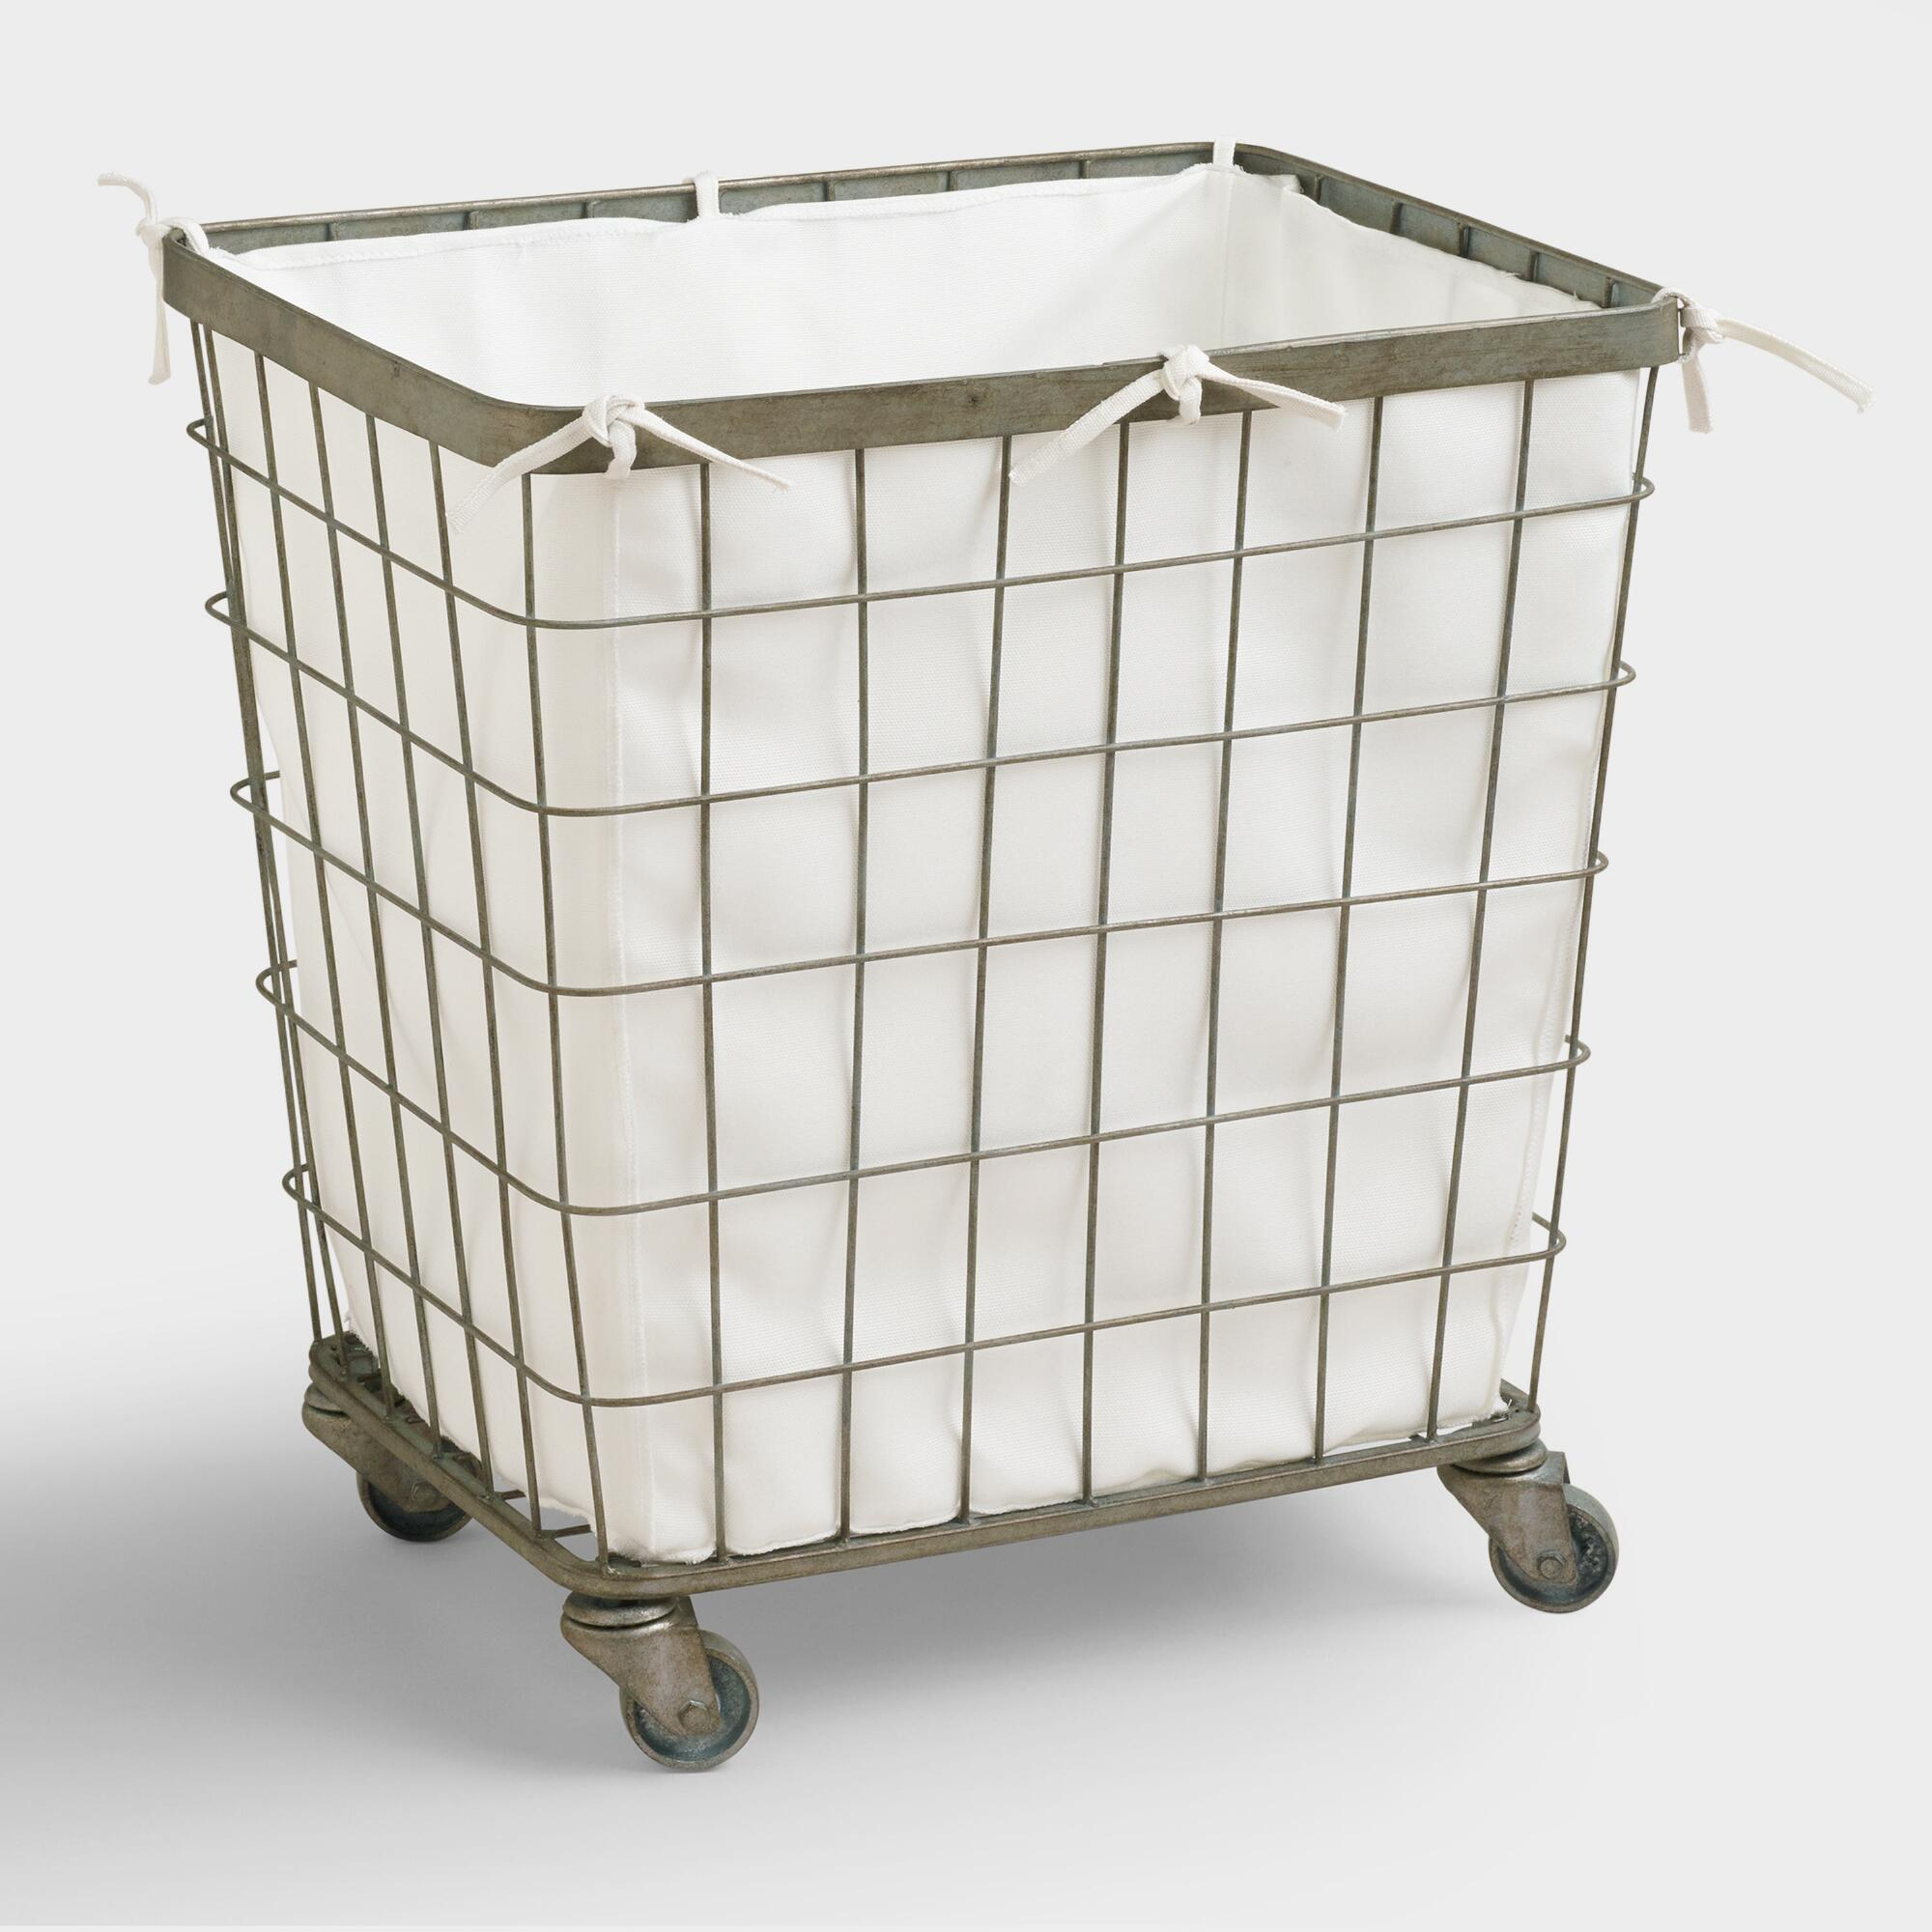 Laundry Baskets - Hampers, Drying Racks | World Market